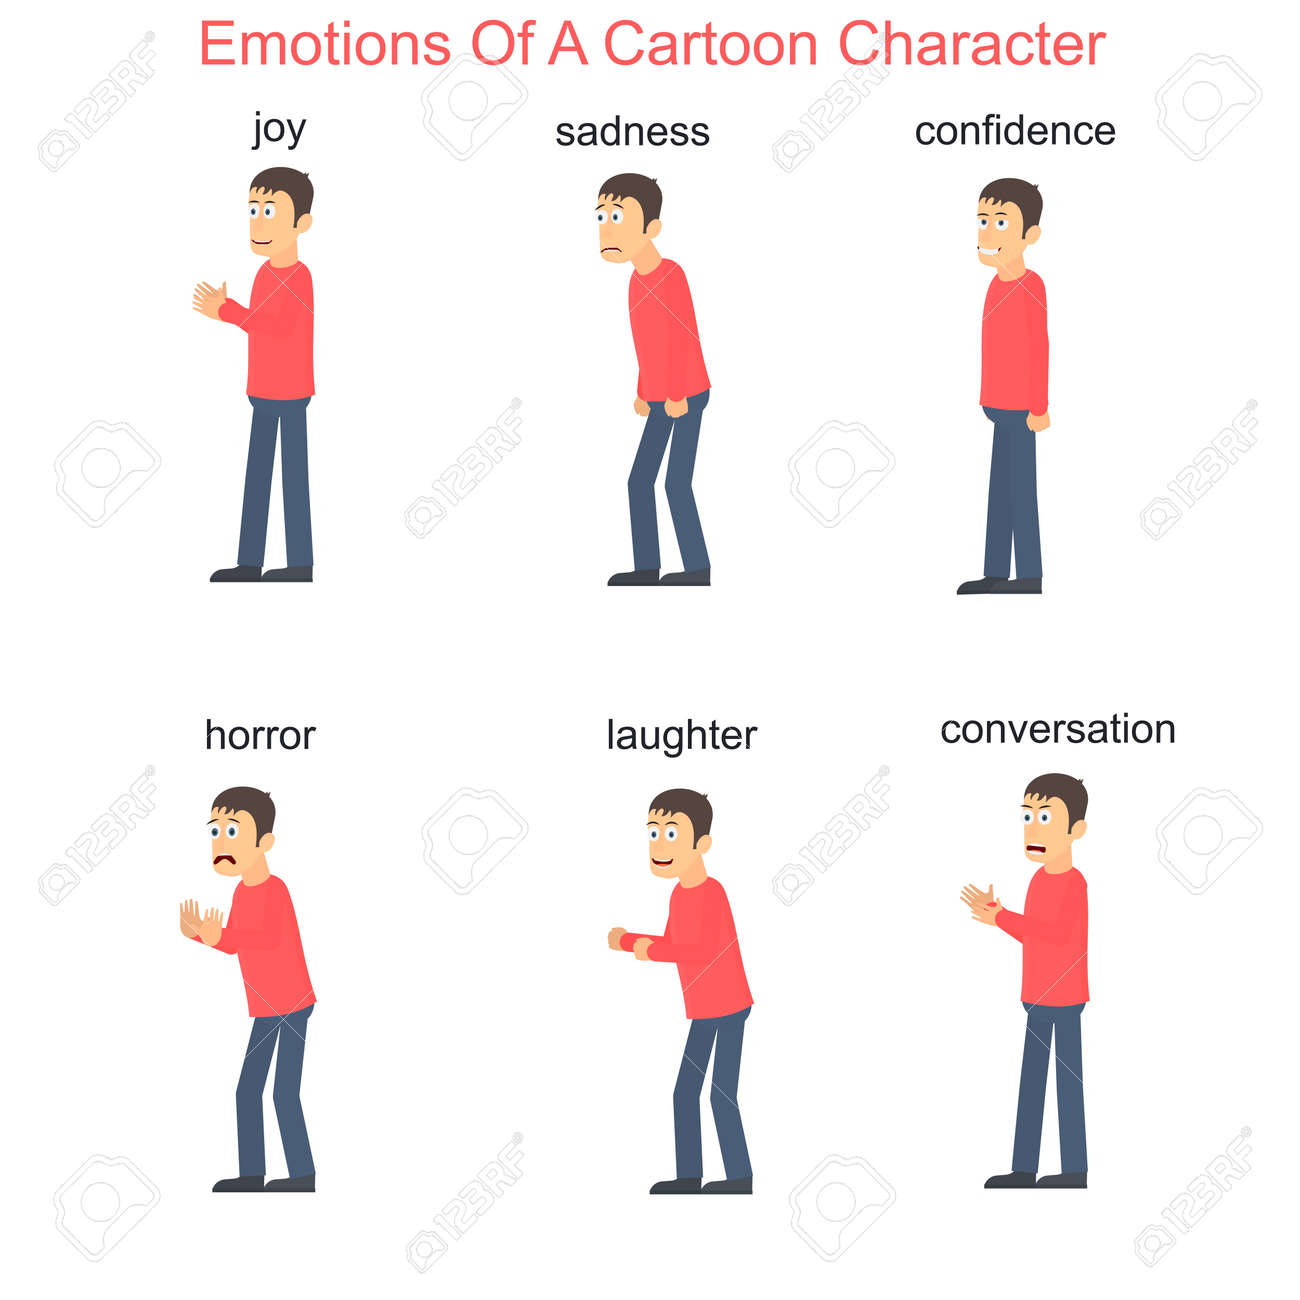 Emotions of a cartoon character, vector illustration - 165067108